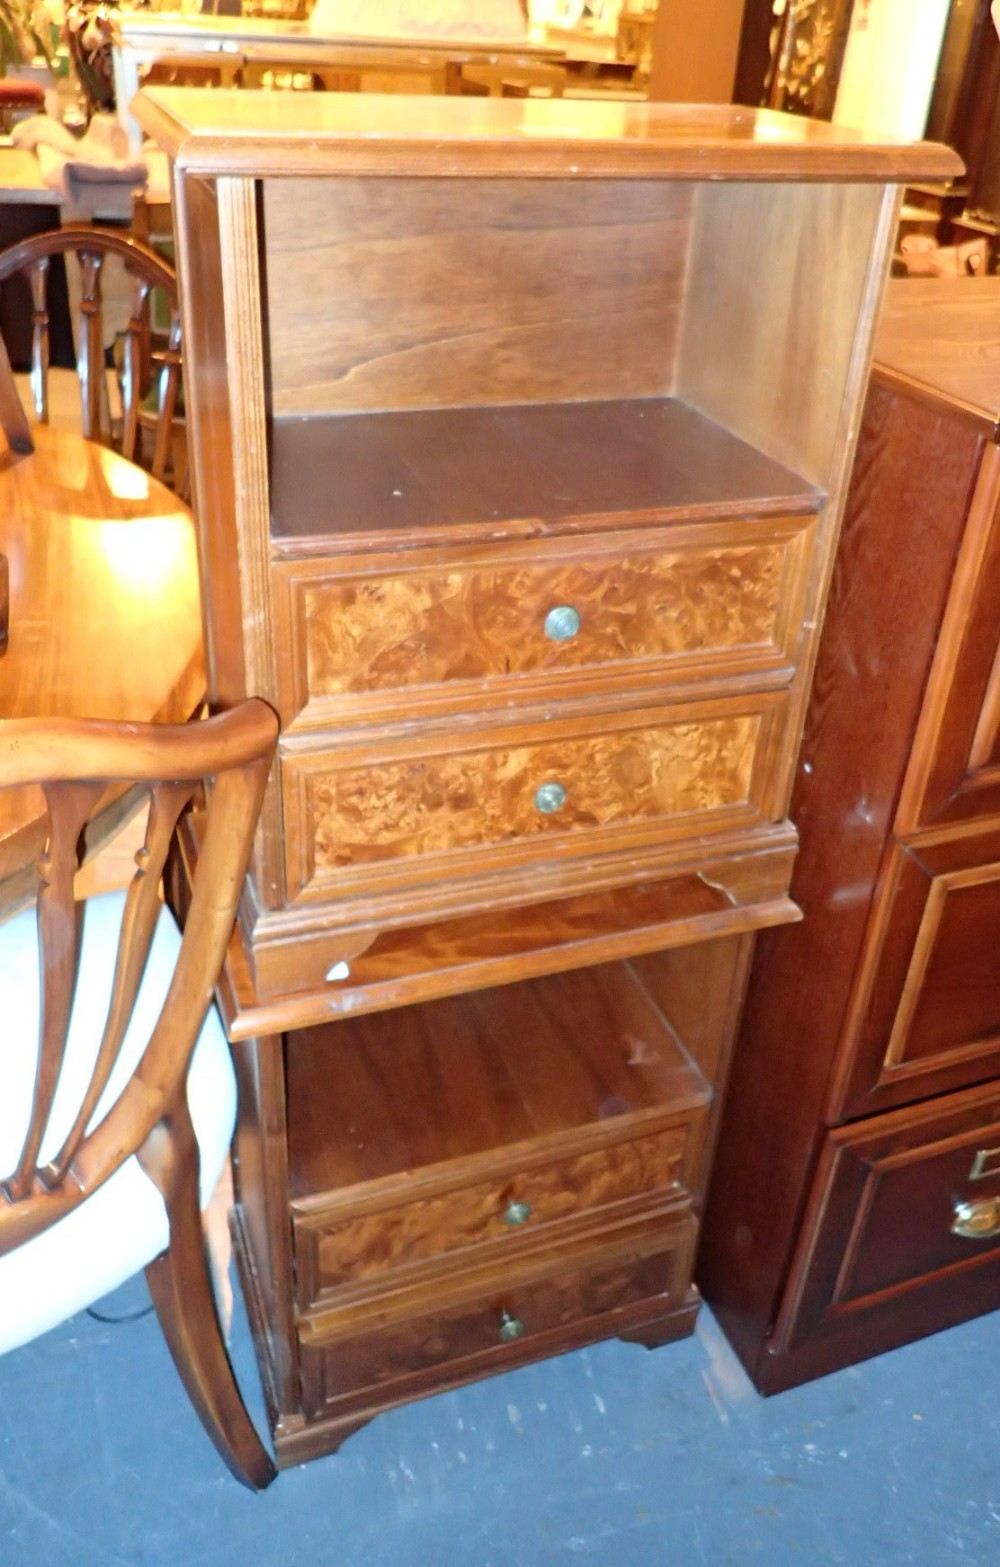 Pair of burr walnut fronted bedside chests with two drawers 52 x 29 x 60 cm H